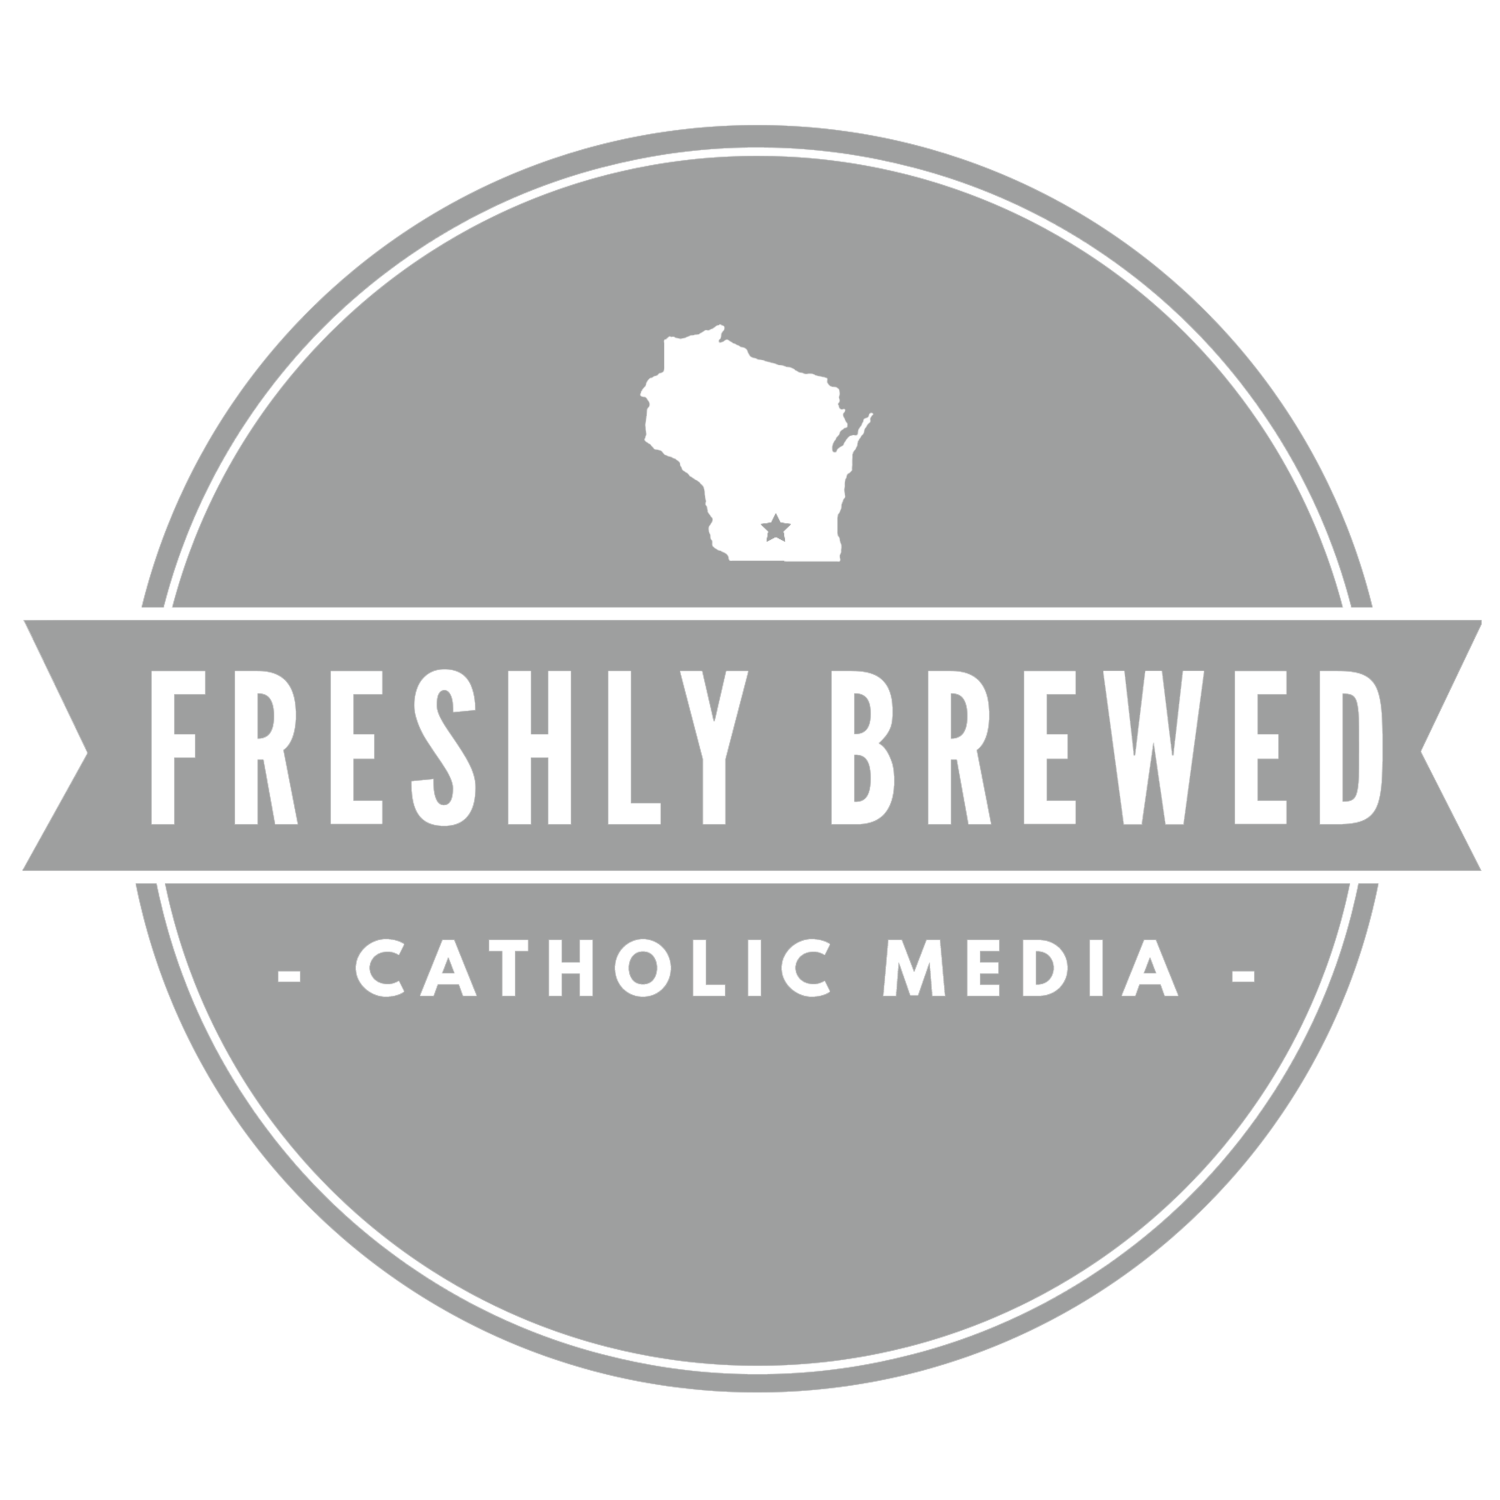 FRESHLY BREWED Catholic Media